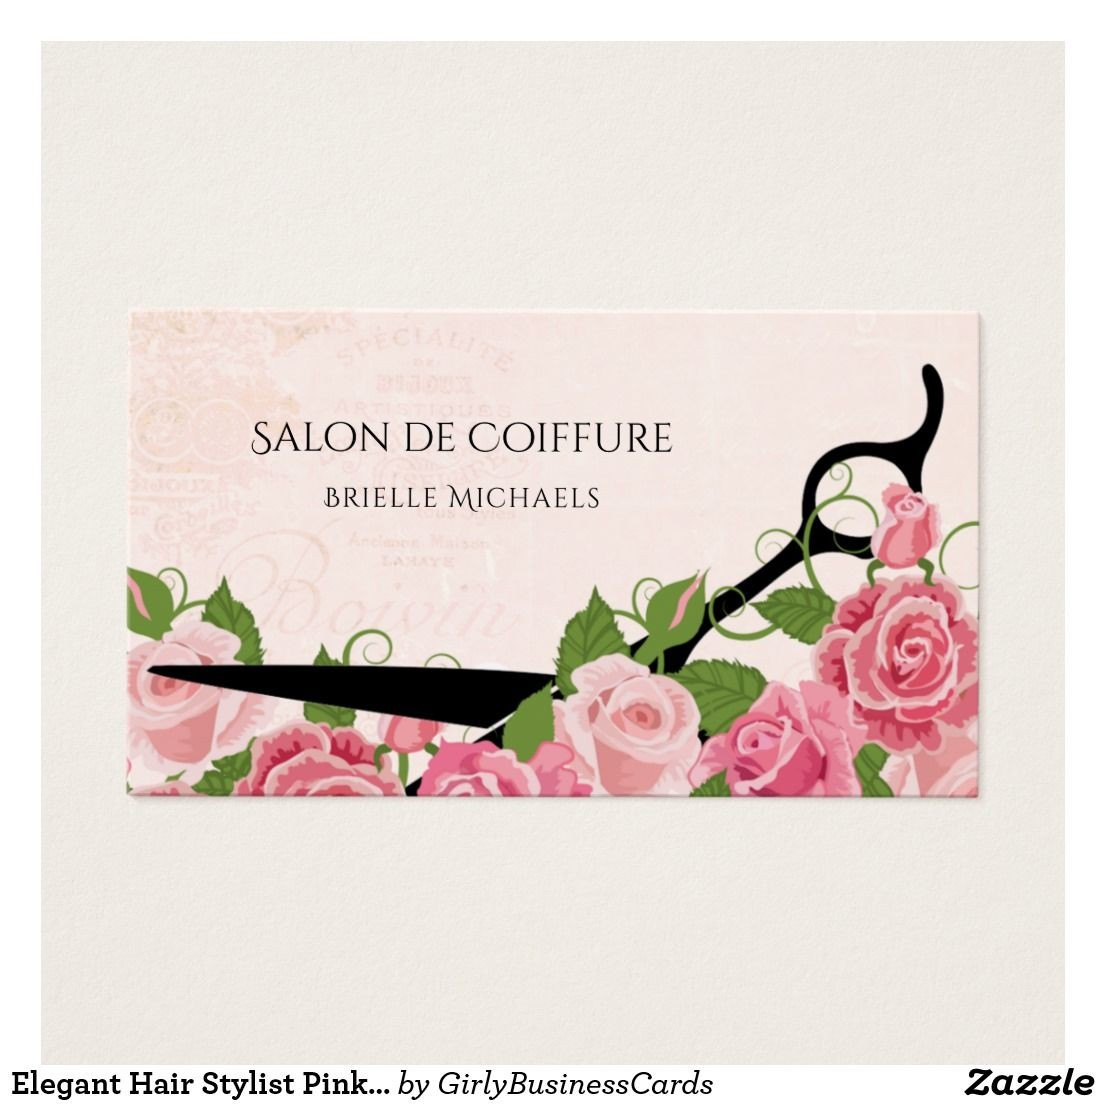 hairdresser birthday card ; hairdresser-birthday-card-inspirational-hair-stylist-pink-rose-hair-salon-shears-business-card-of-hairdresser-birthday-card